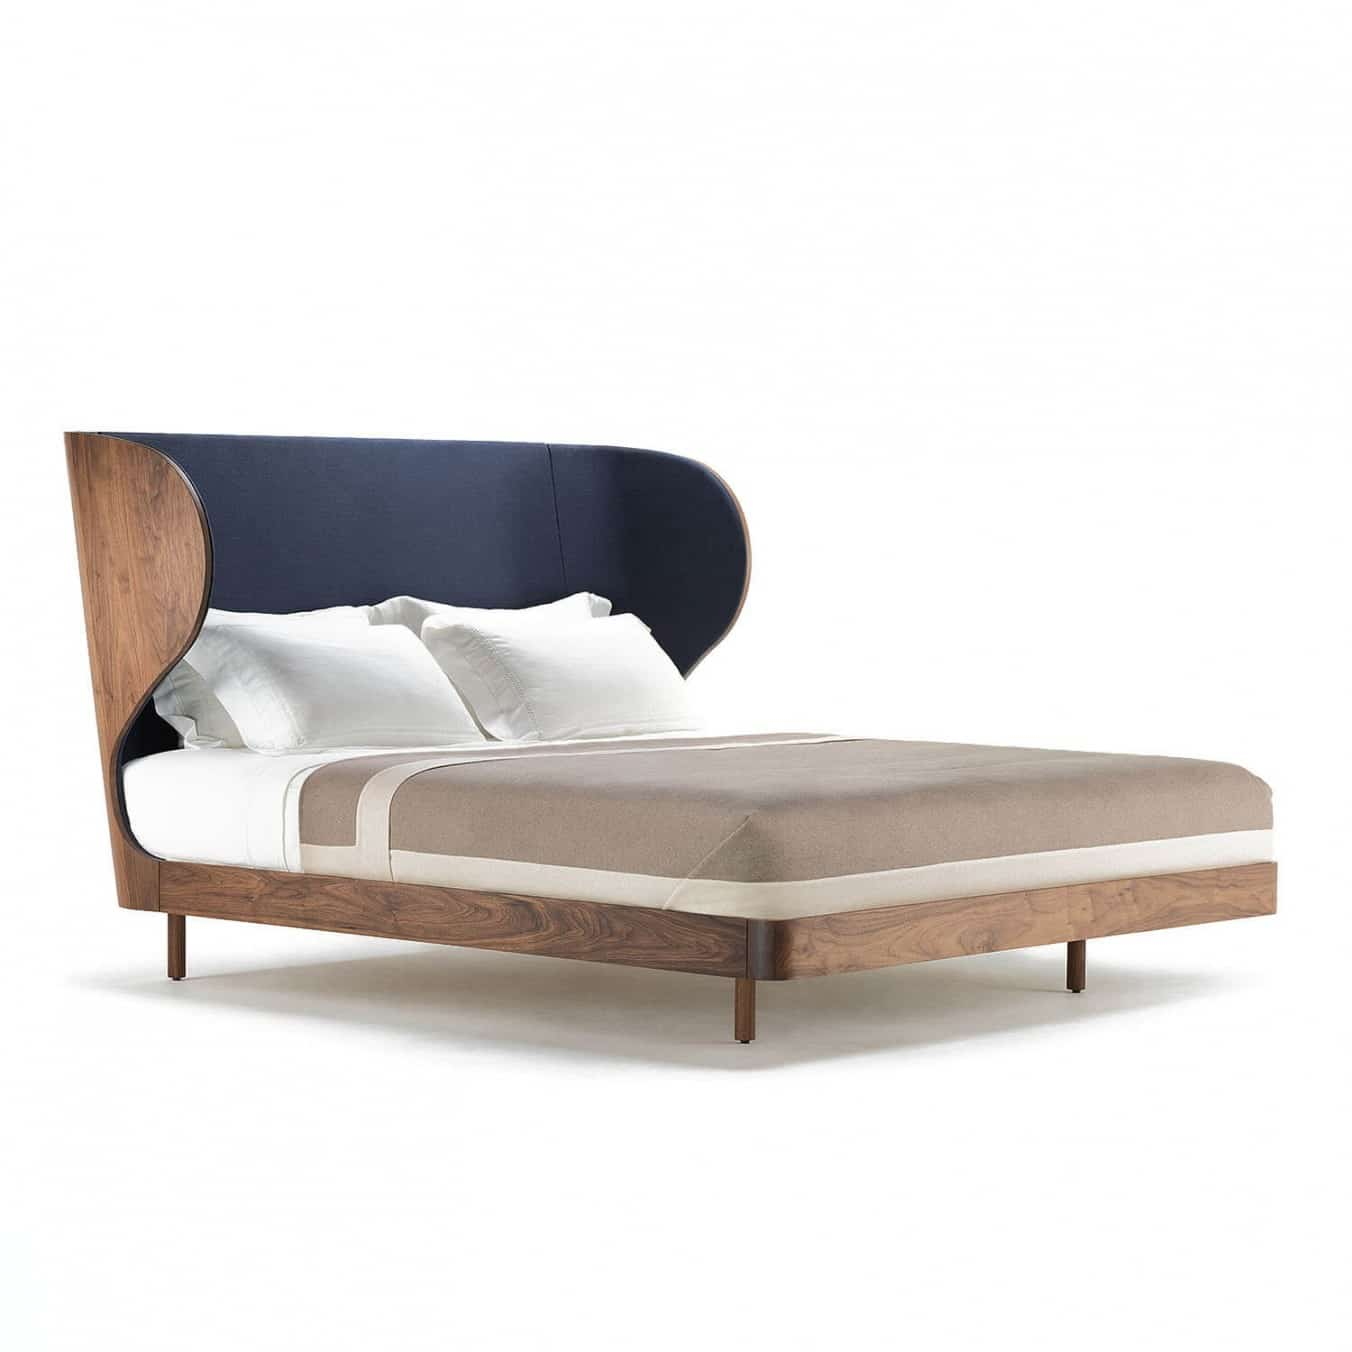 How to choose luxury designer beds? – the Workshop Gallery